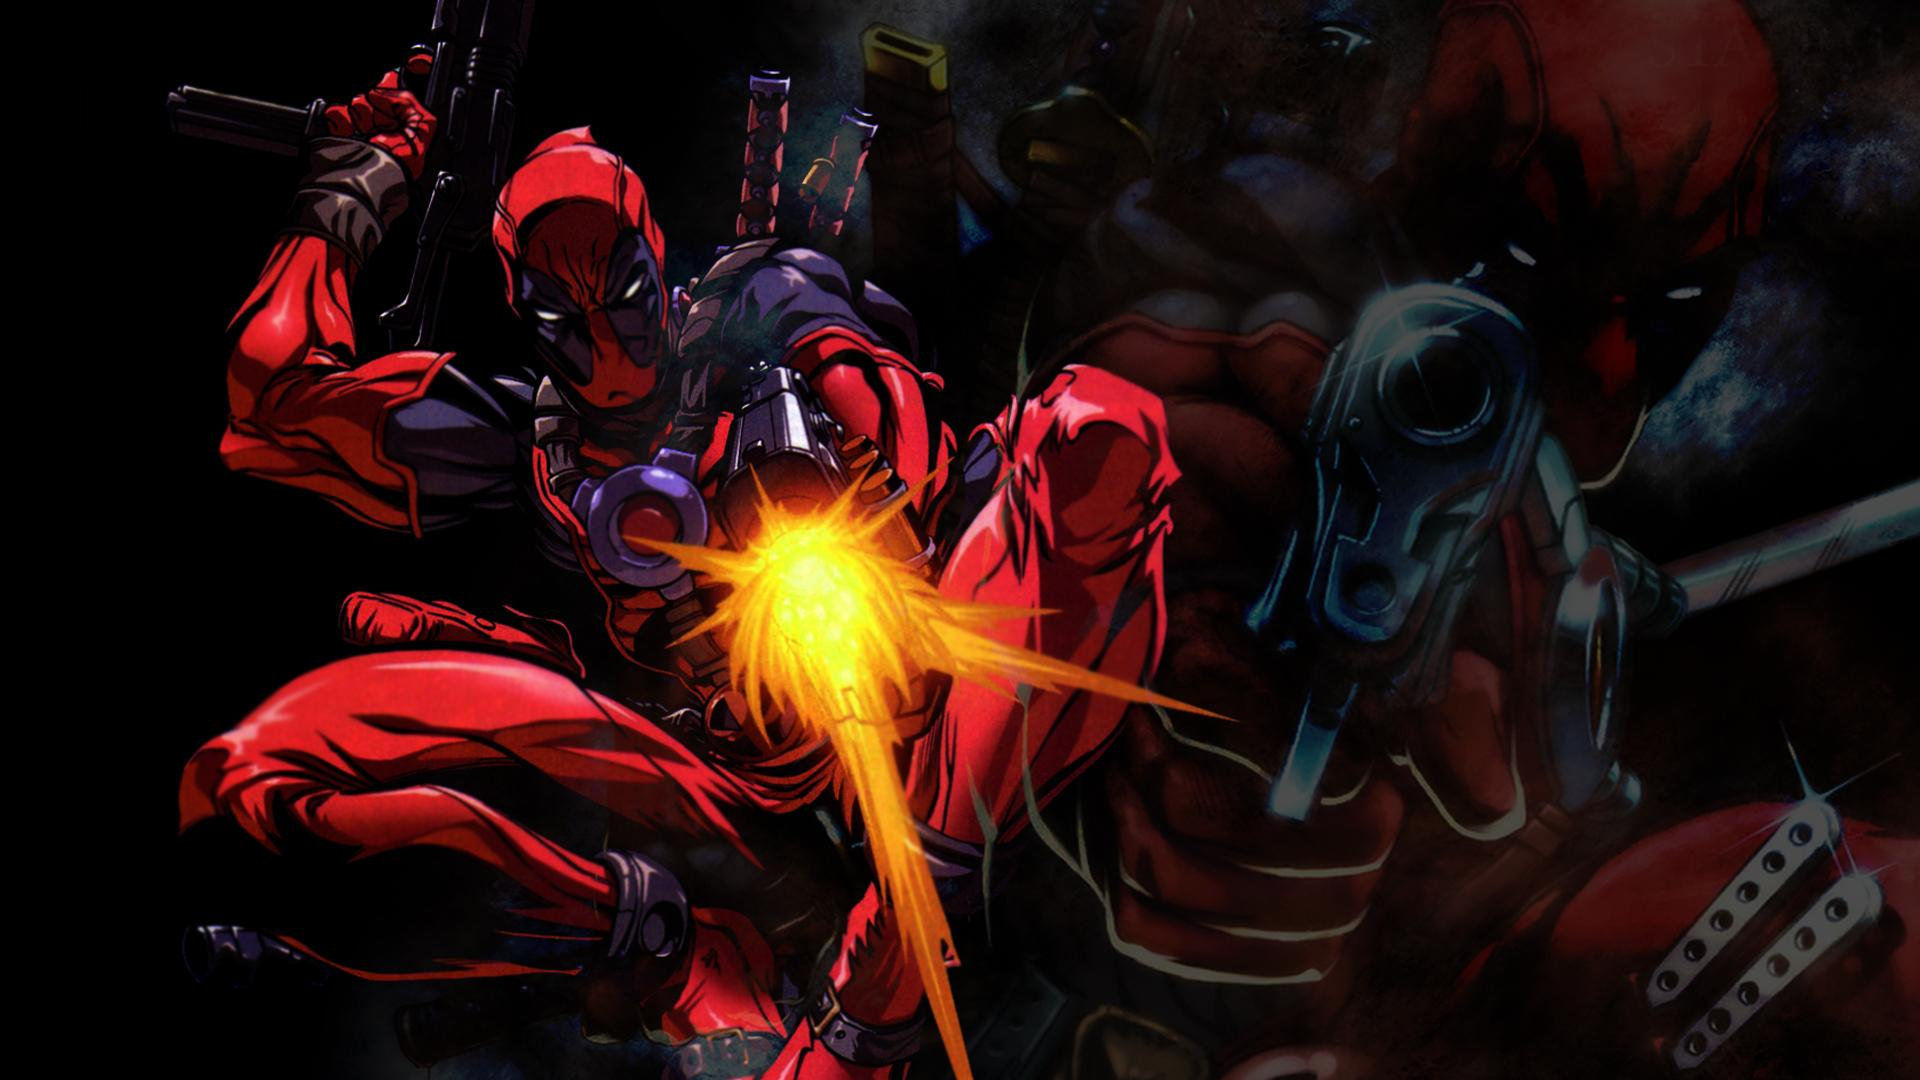 Deadpool wallpapers for desktop wallpapersafari for Deadpool wallpaper 1920x1080